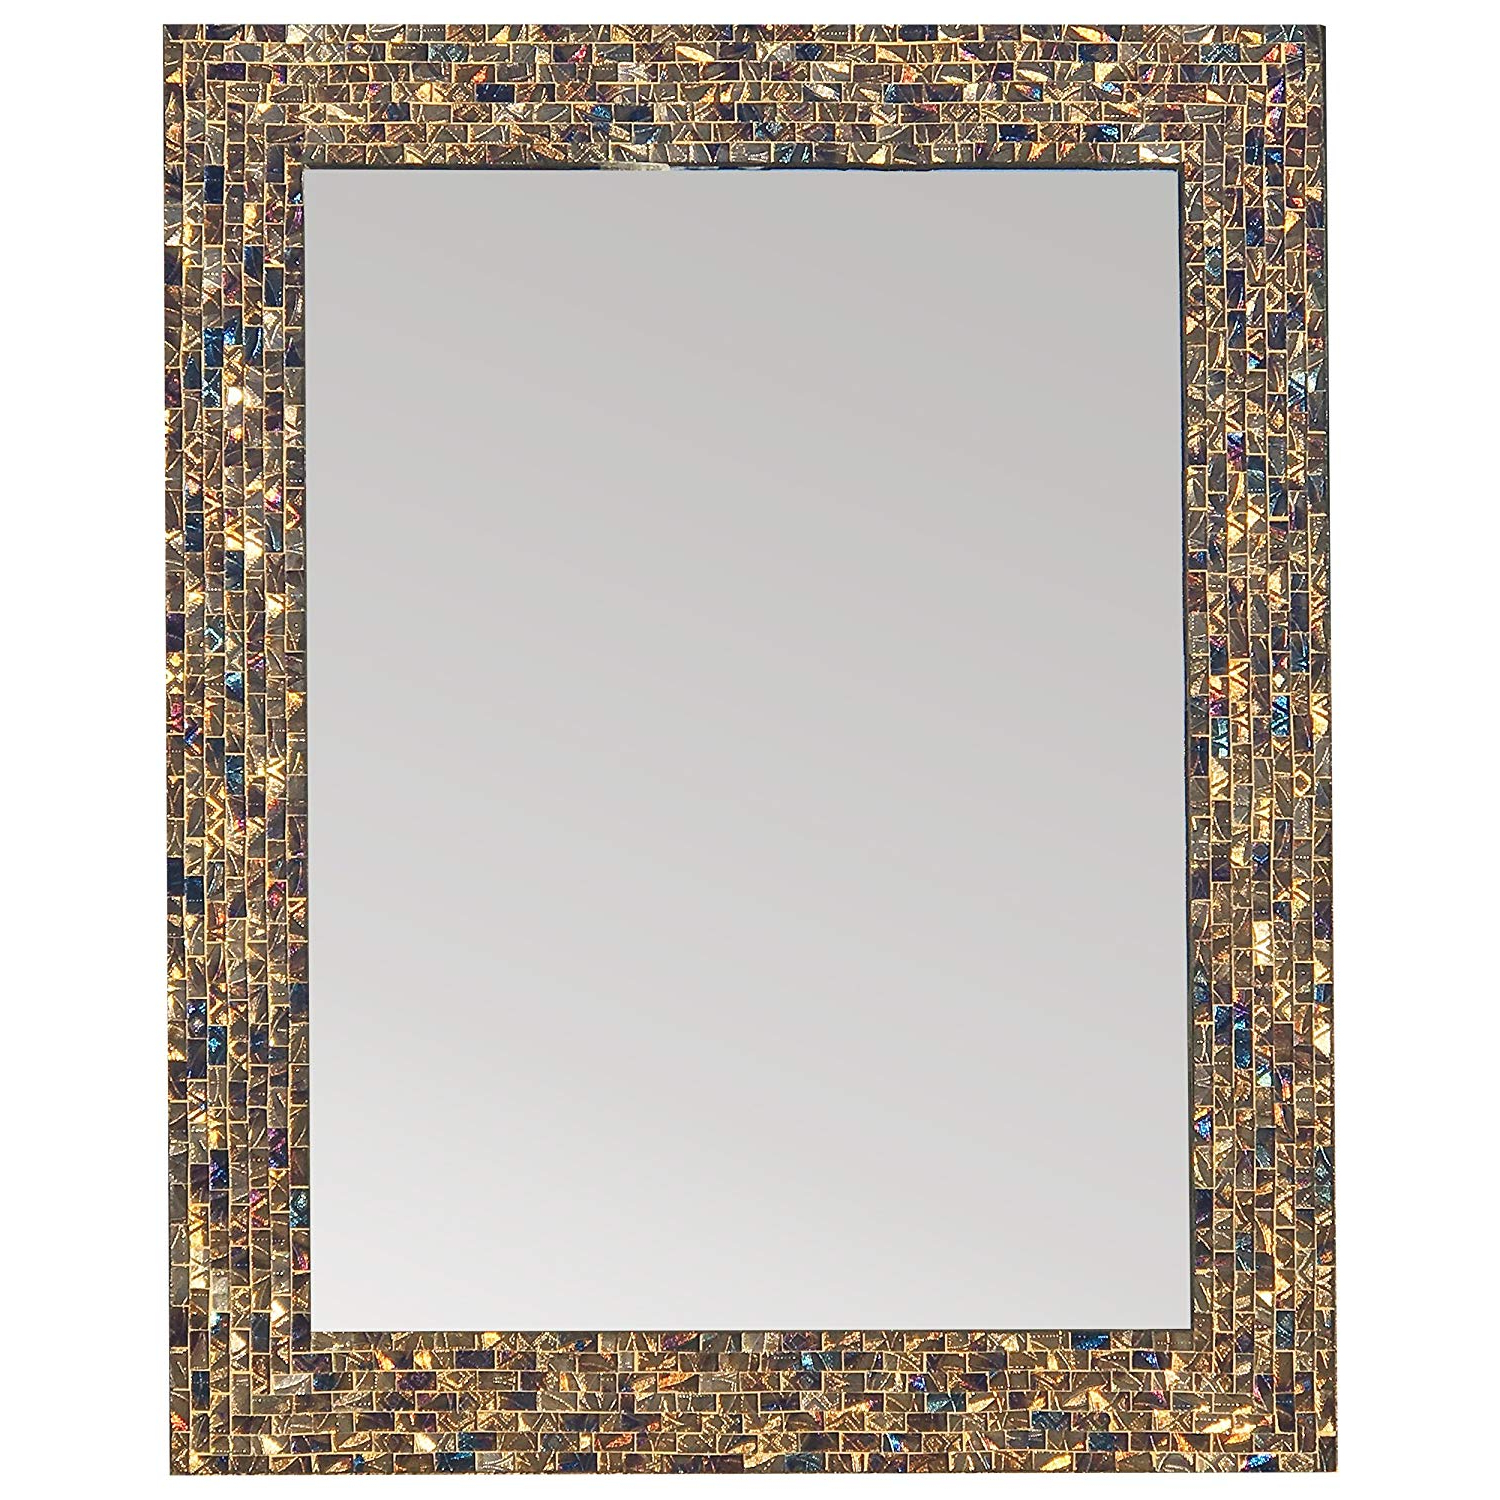 Newest Colorful Wall Mirrors Intended For Amazon: Multi Colored & Gold, Luxe Mosaic Glass Framed Wall (View 5 of 20)